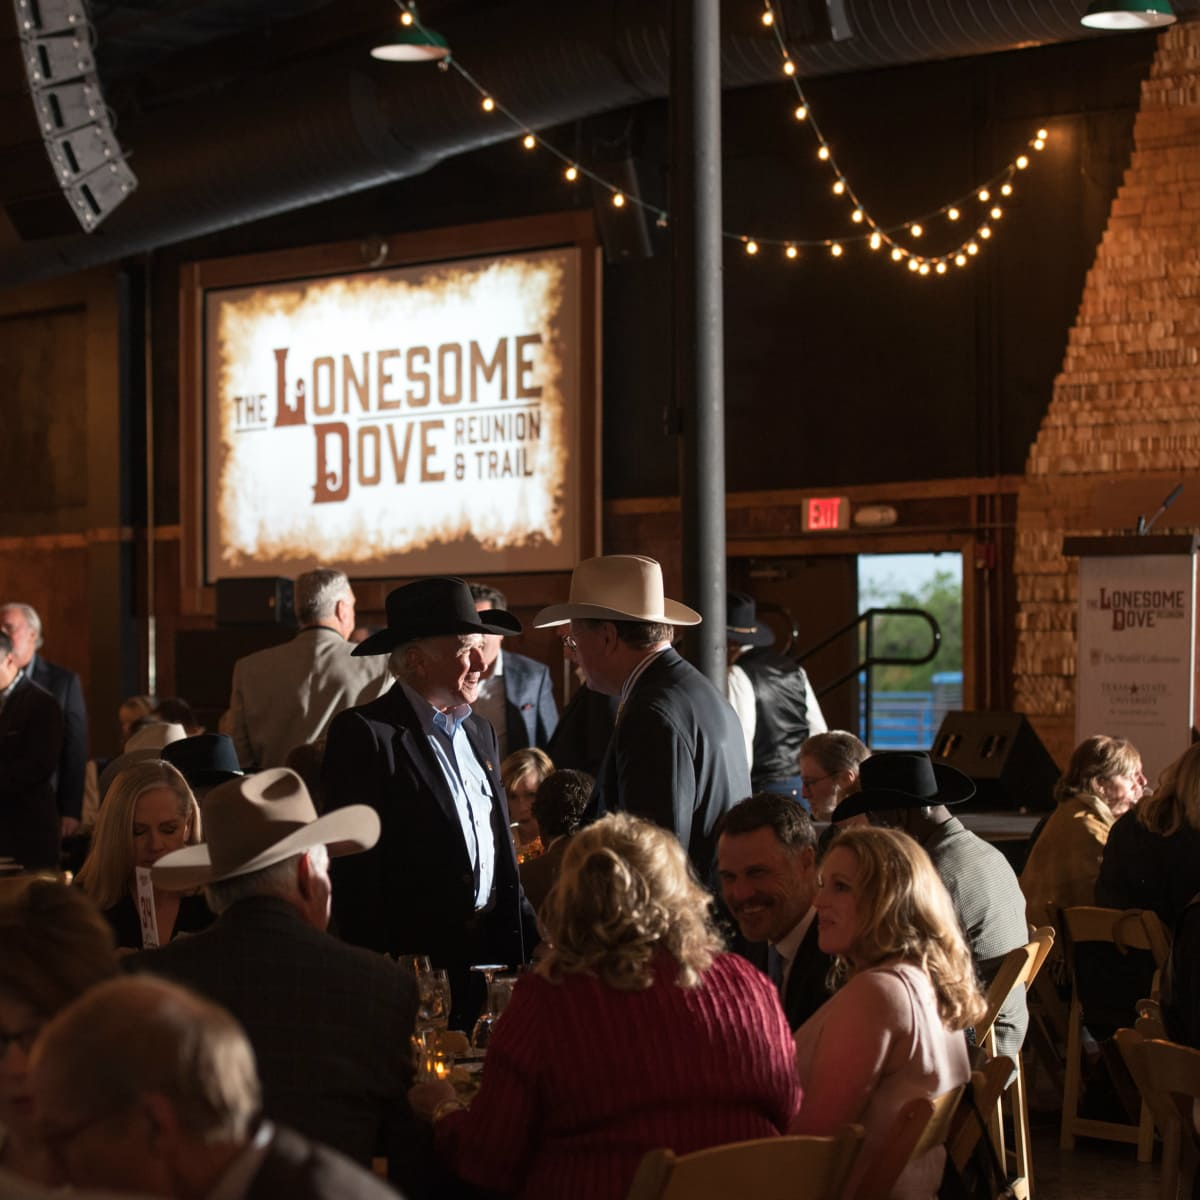 Lonesome Dove reunion